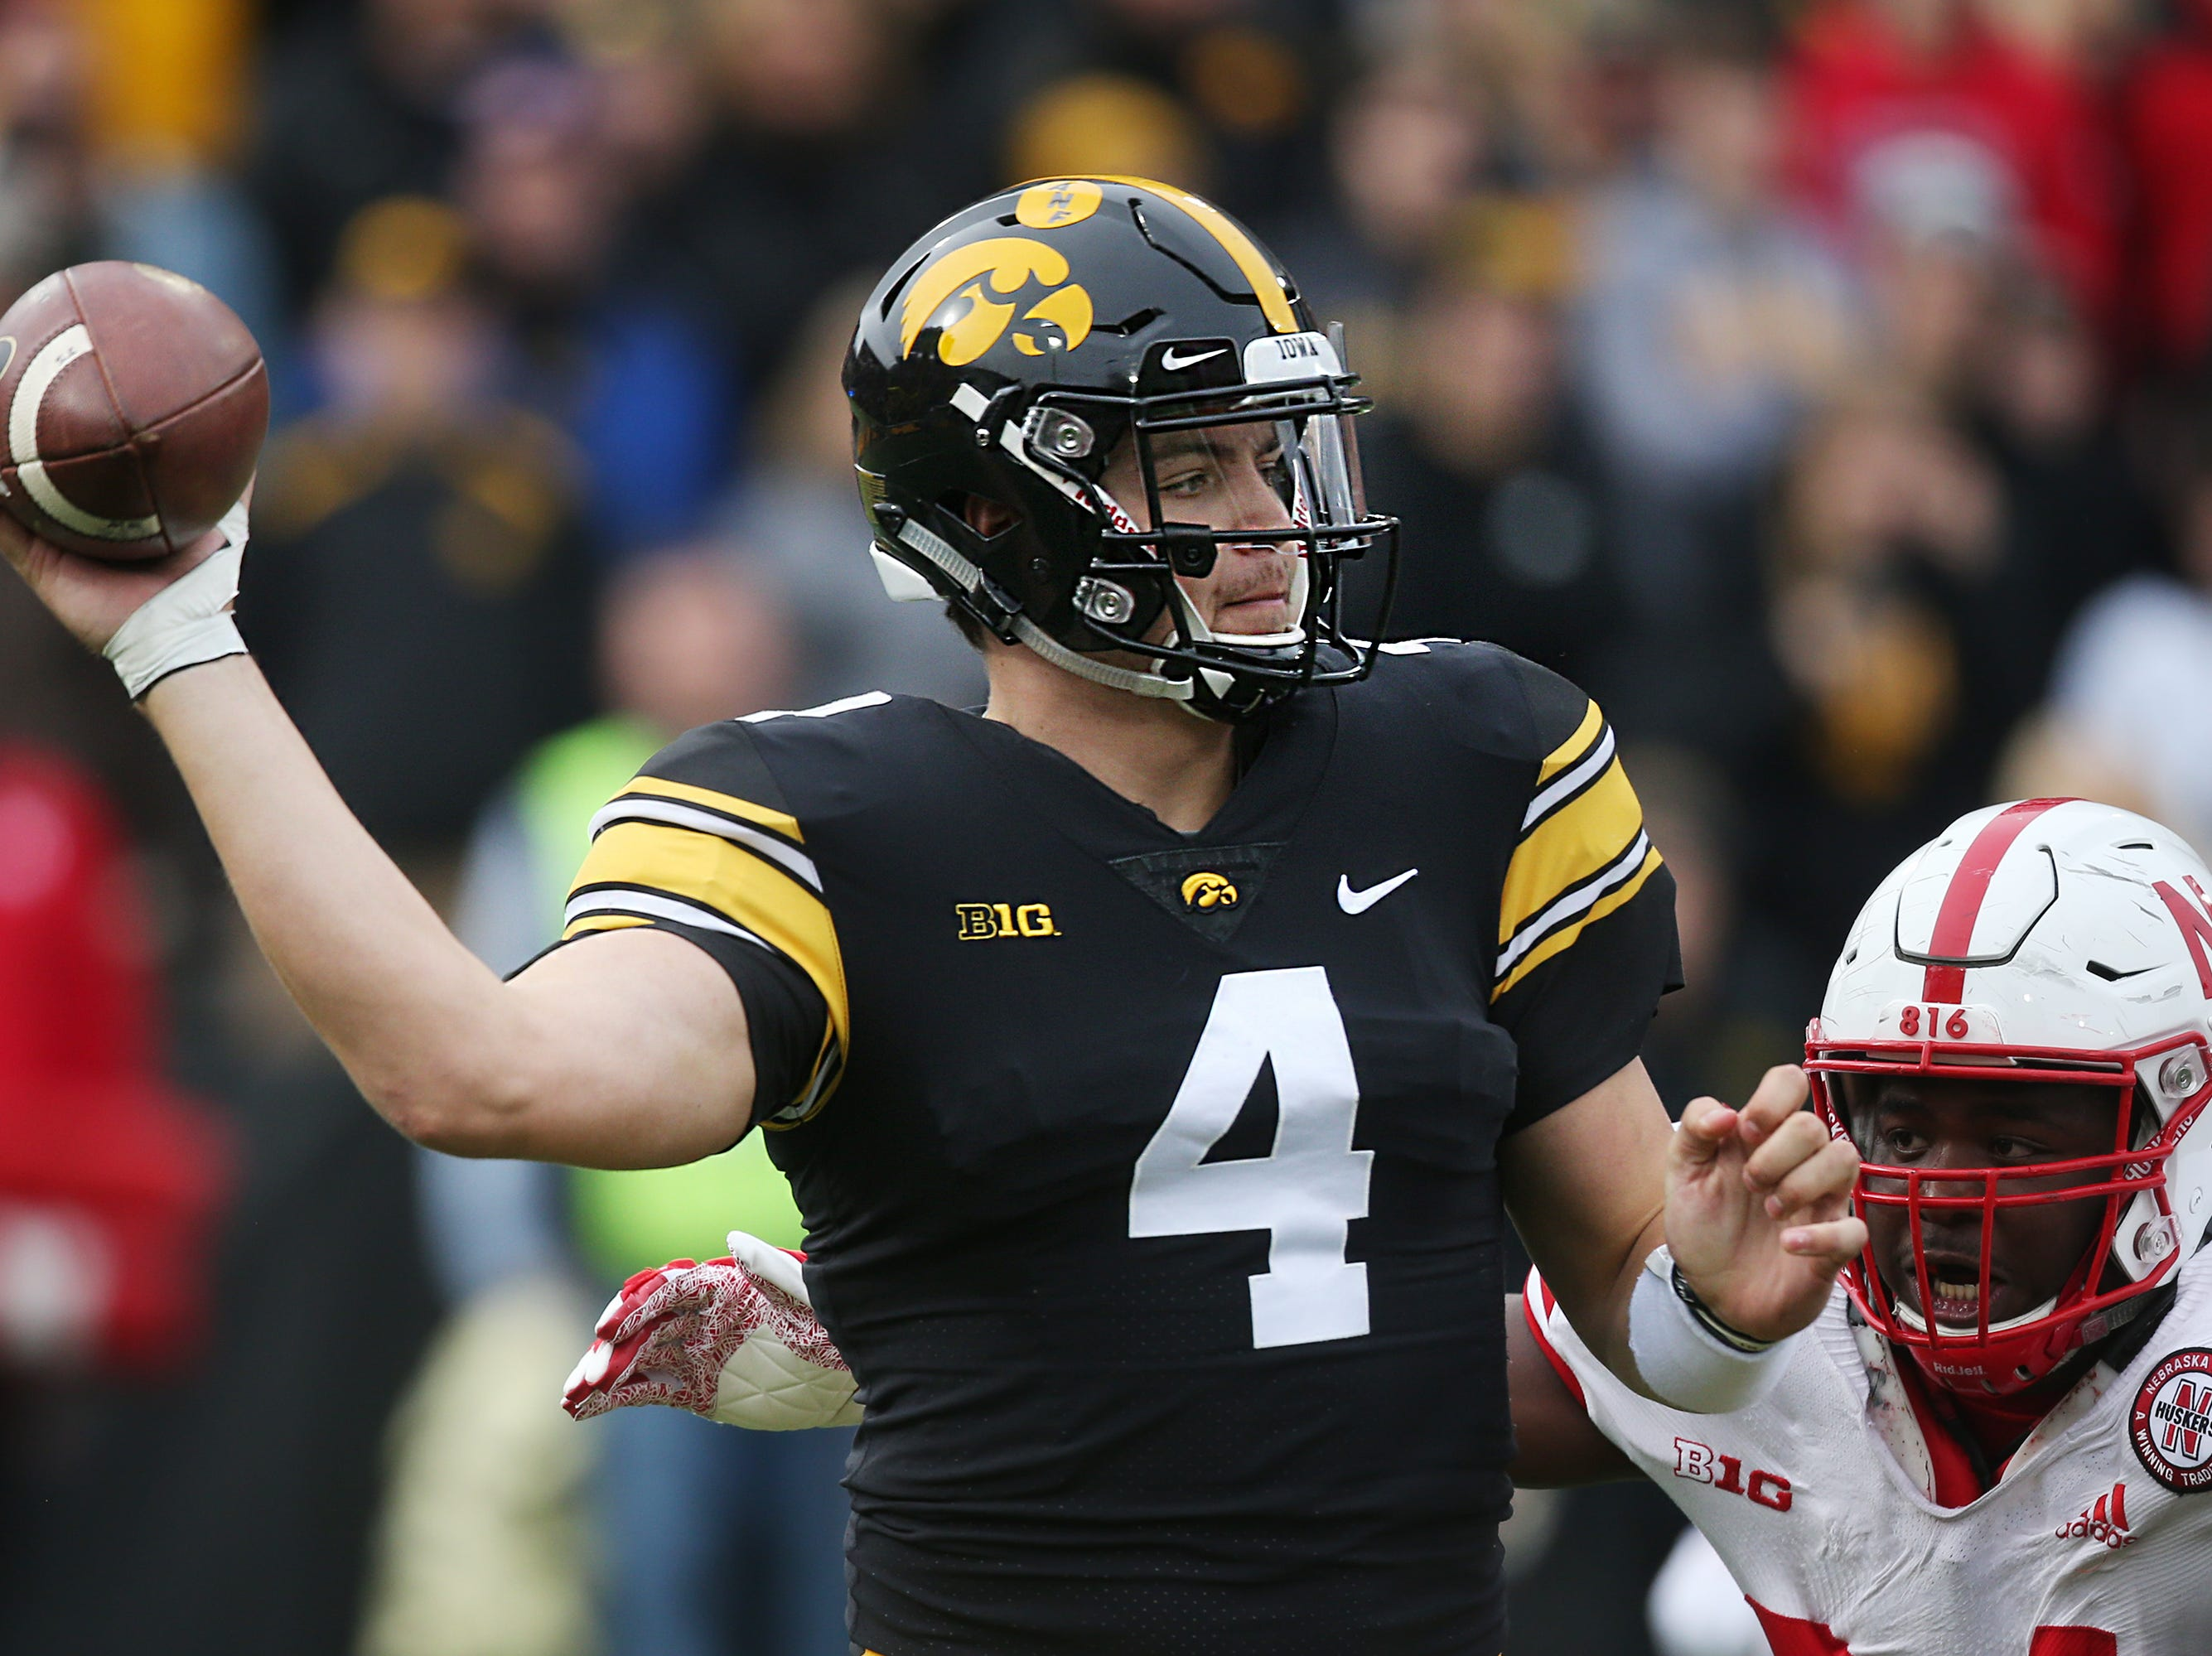 Iowa quarterback Nate Stanley looks for a pass during the senior day match-up between the Iowa Hawkeyes and the Nebraska Cornhuskers on Friday, Nov. 23, 2018, at Kinnick Stadium, in Iowa City.